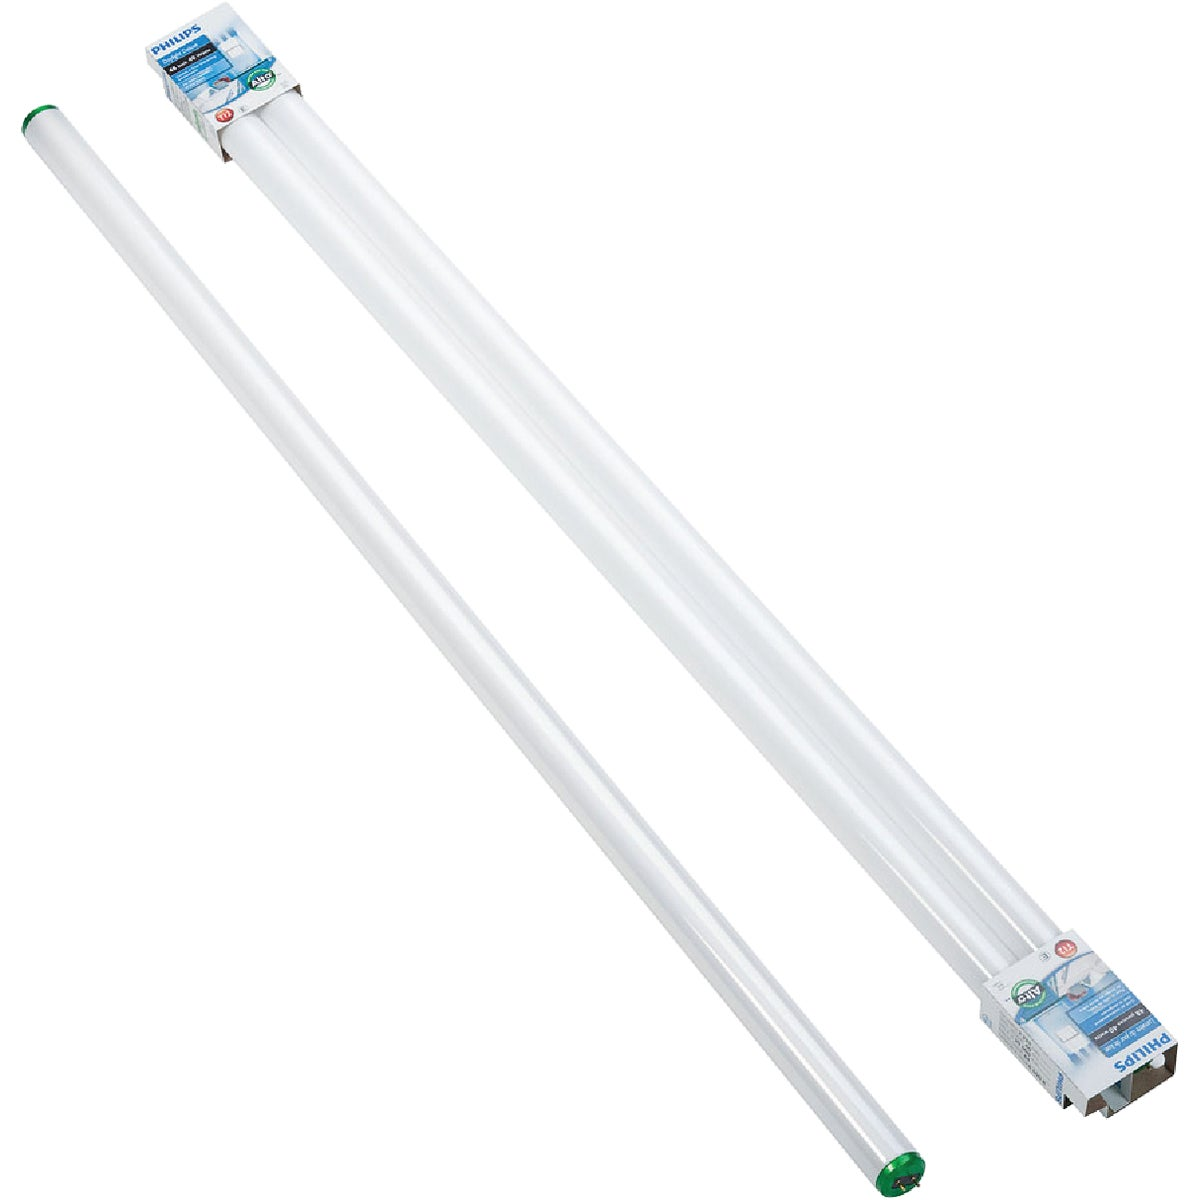 40W 4' T12D FLUOR TUBE - 66654 F40/AS/ECO/2PK by G E Lighting